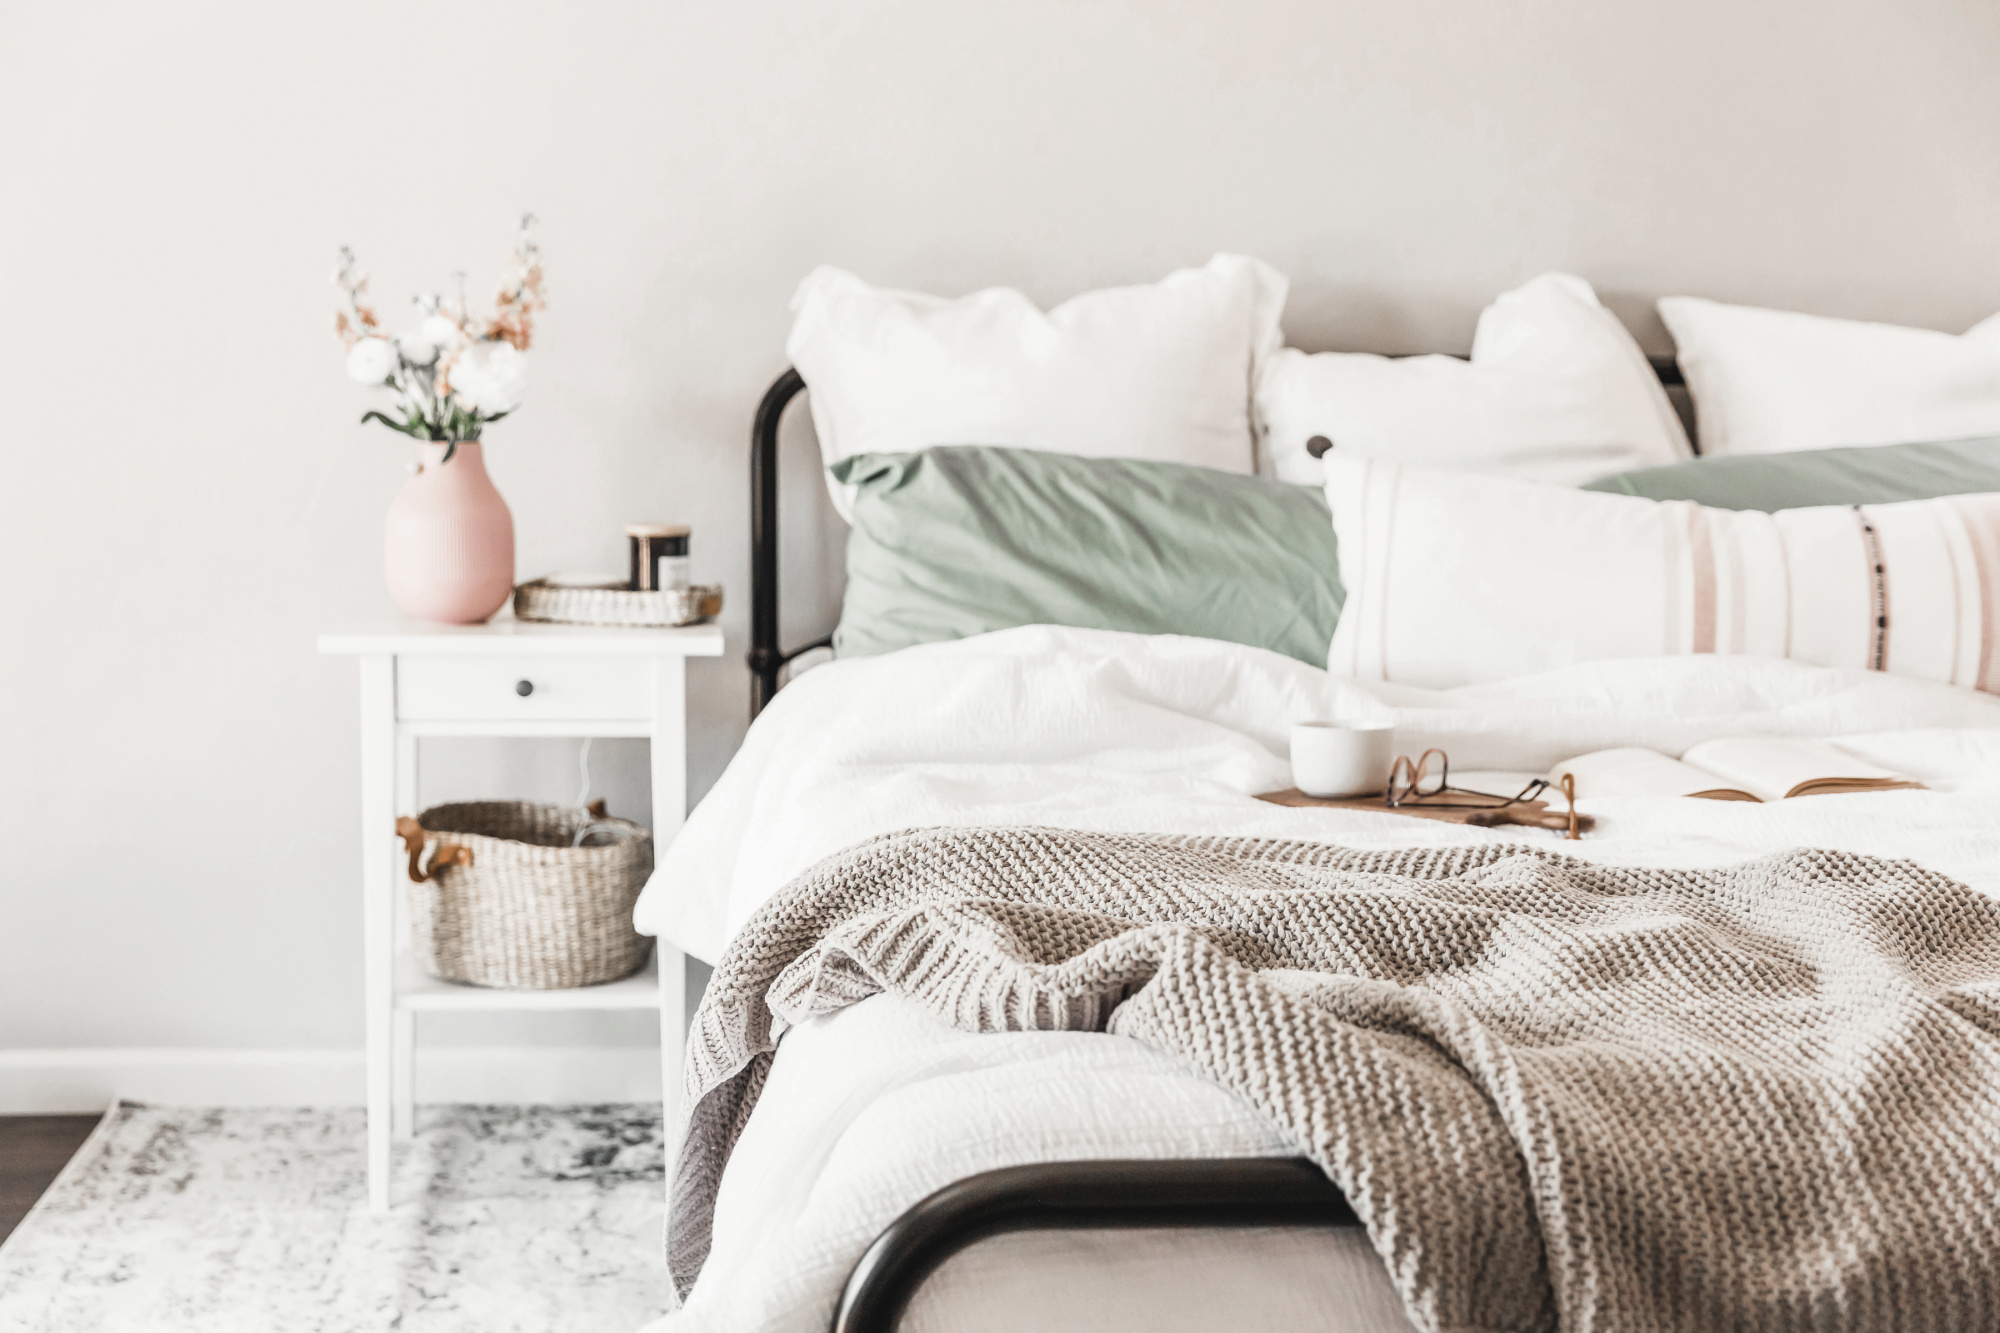 How To Make Your Master Bedroom The Retreat You've Always Wanted! comfy cozy bedding, master bedroom sanctuary, luxe bedding